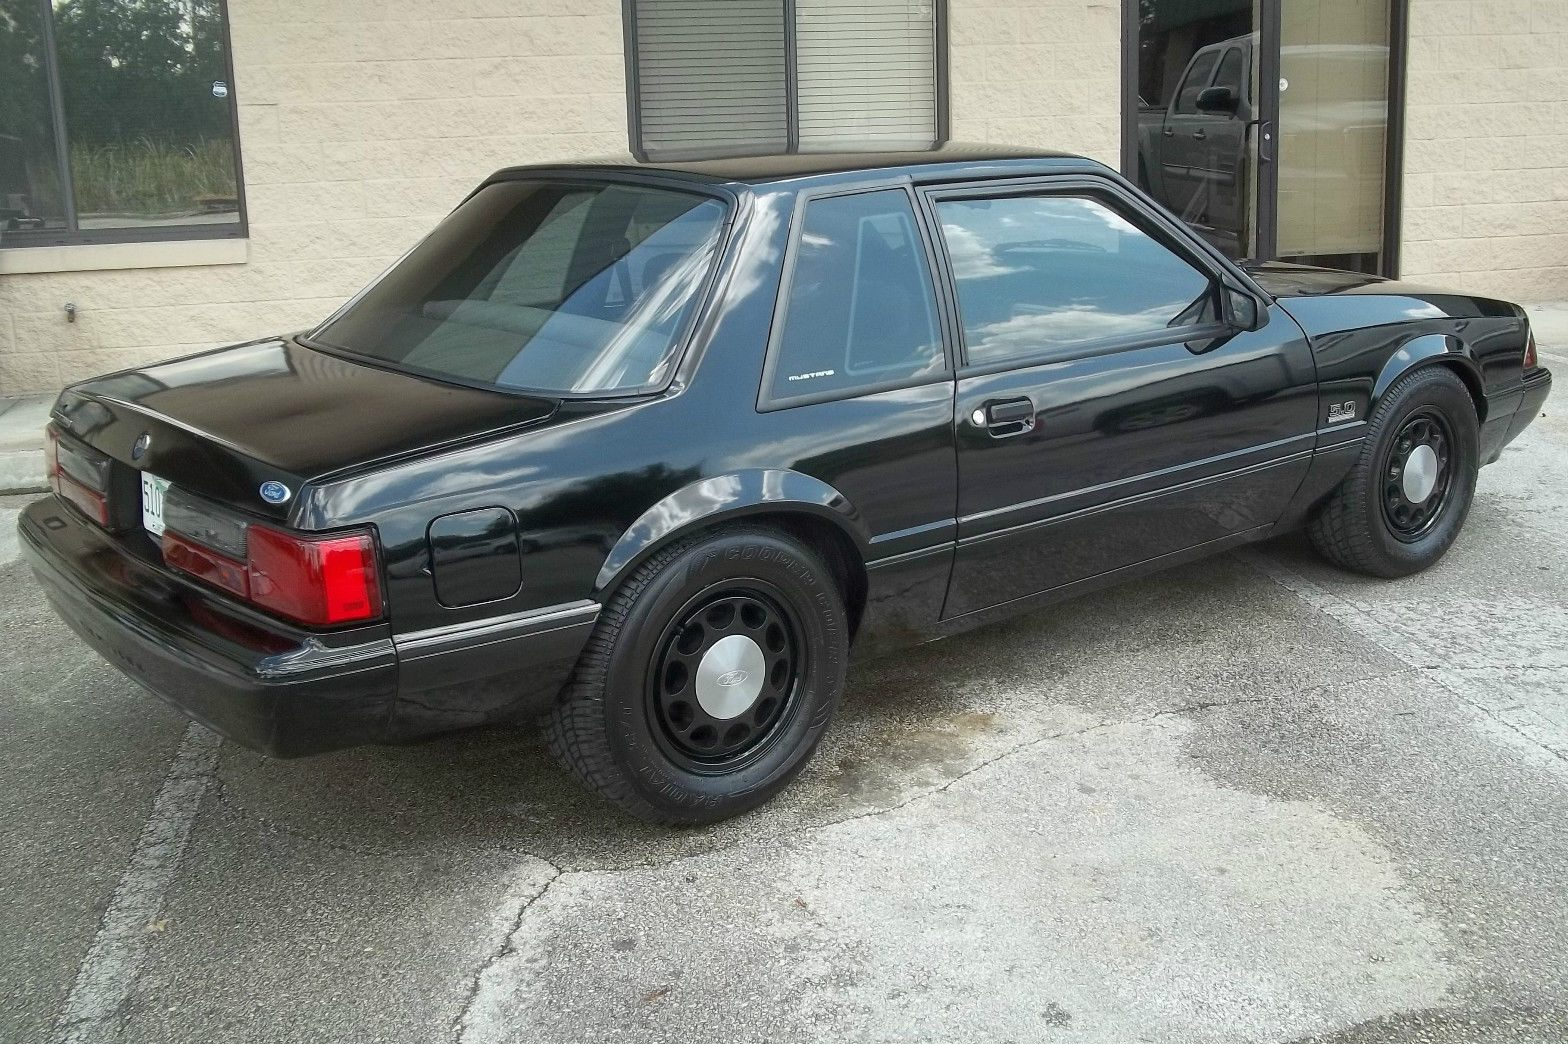 Cop Components 1989 Ford Mustang Ssp